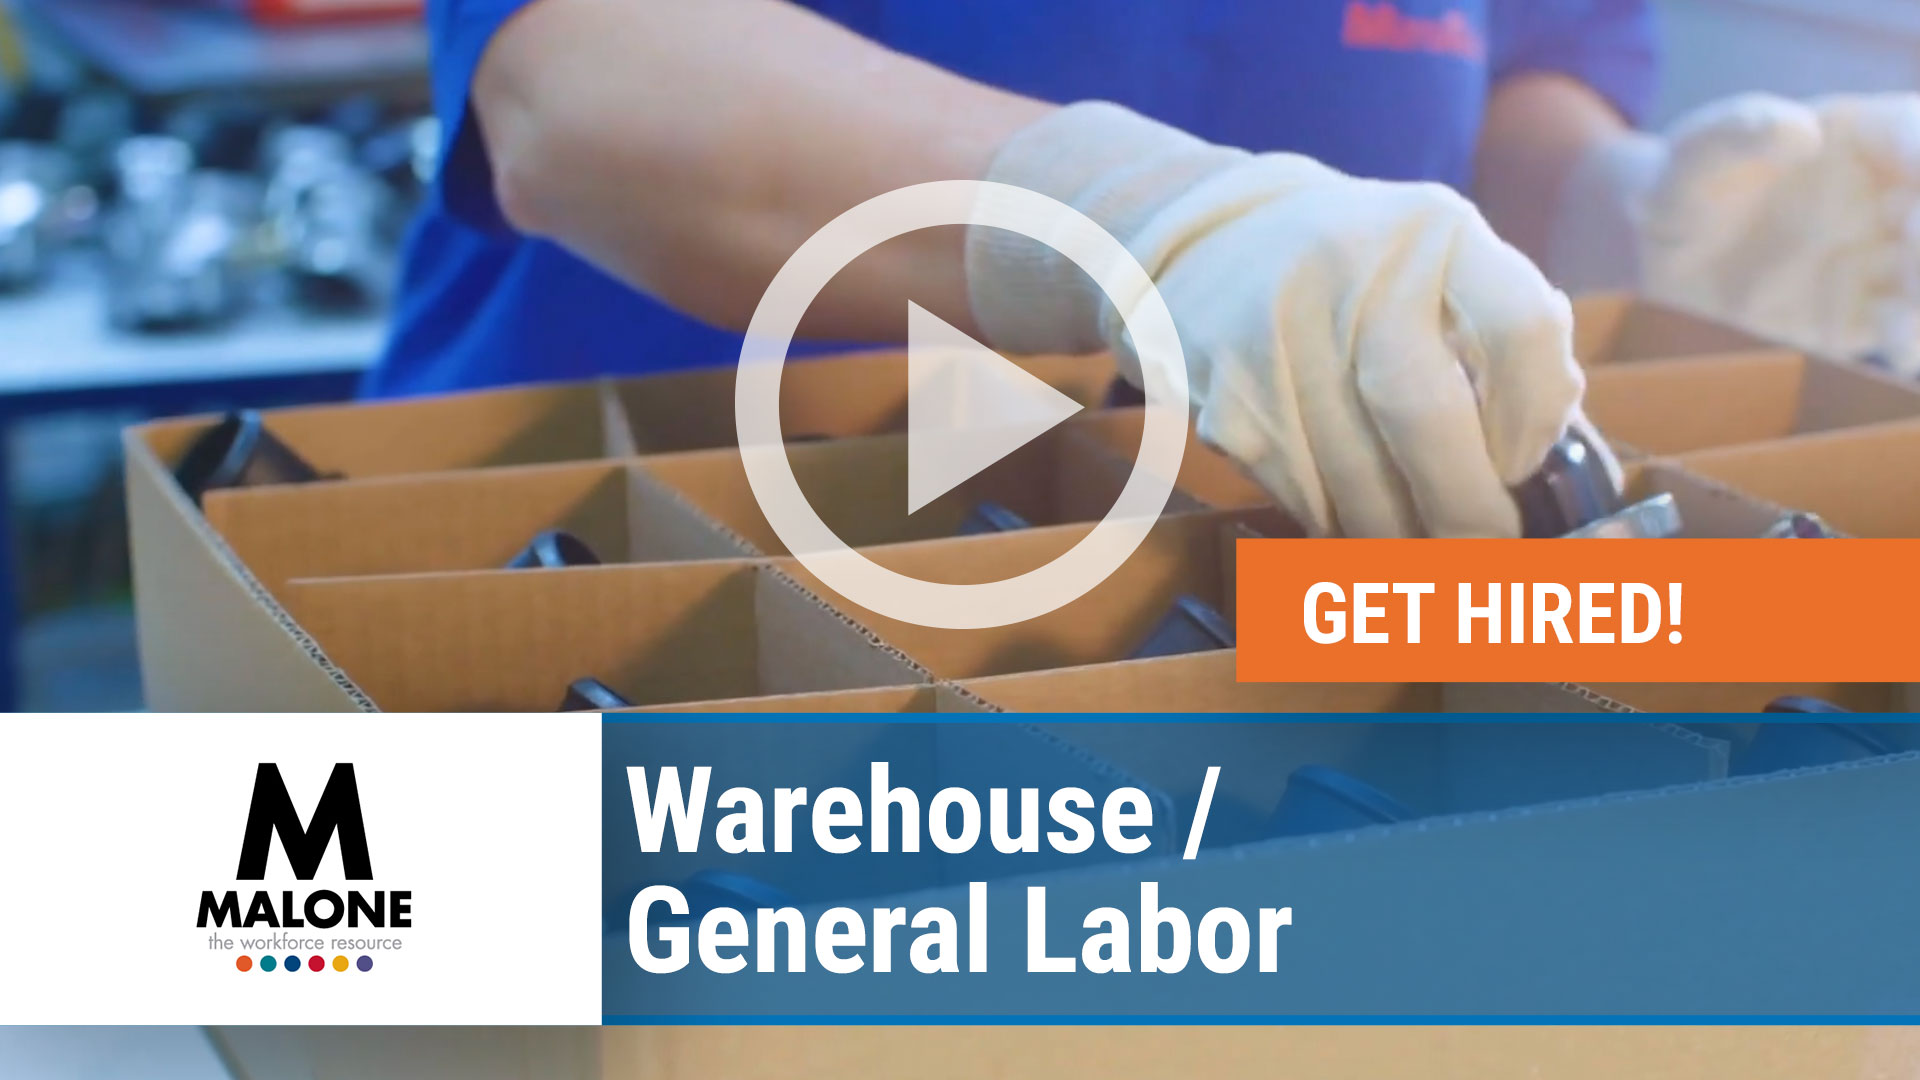 Watch our careers video for available job opening Warehouse - General Labor in Addison, Illinois